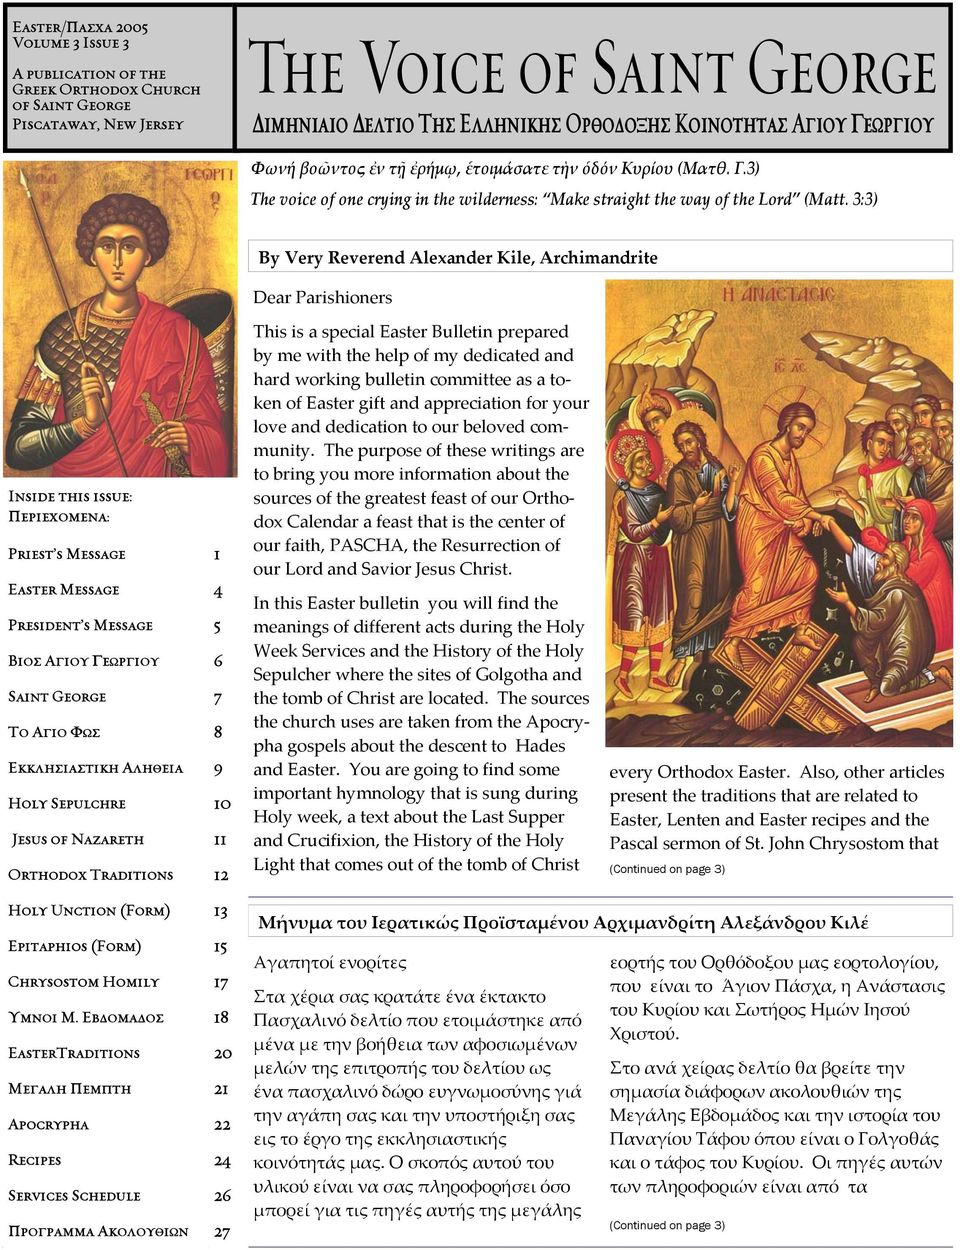 3:3) By Very Reverend Alexander Kile, Archimandrite Dear Parishioners Inside this issue: Periecomena: Priest s Message 1 Easter Message 4 President s Message 5 Bios Agiou Gewrgiou 6 Saint George 7 To